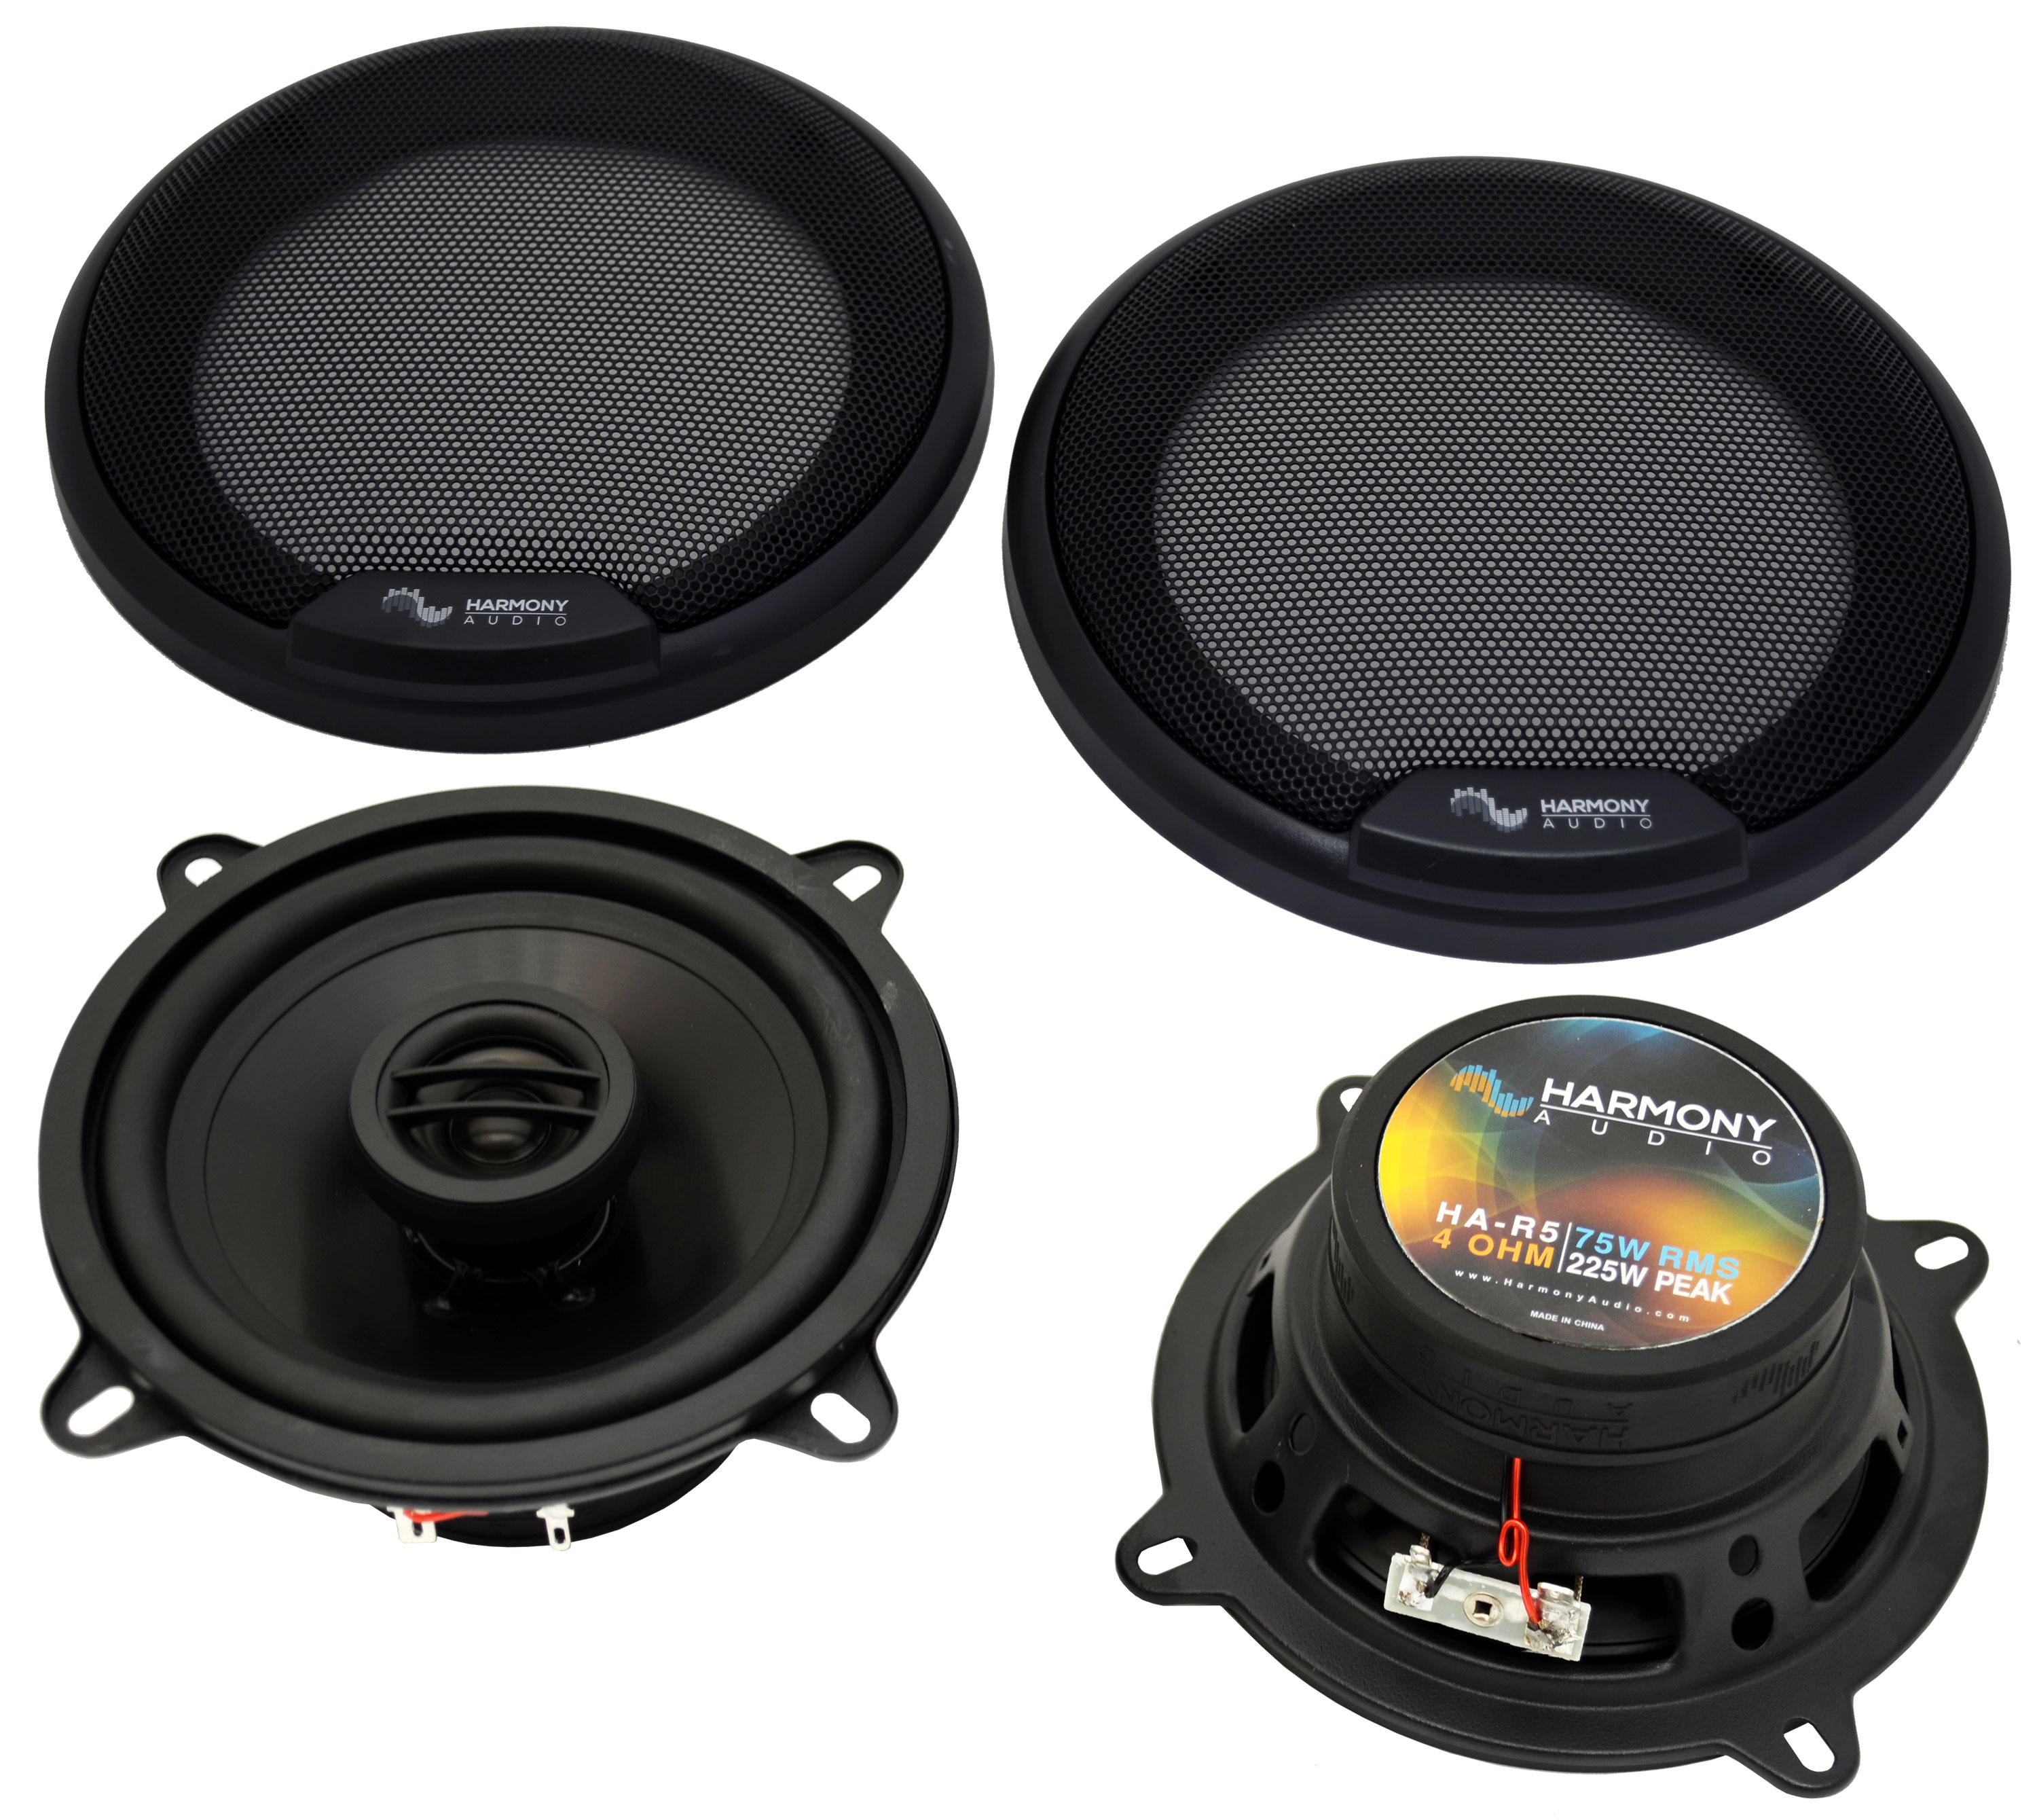 Fits BMW M3 Series 2001 Rear Deck Replacement Speaker Harmony HA-R4 Speakers New